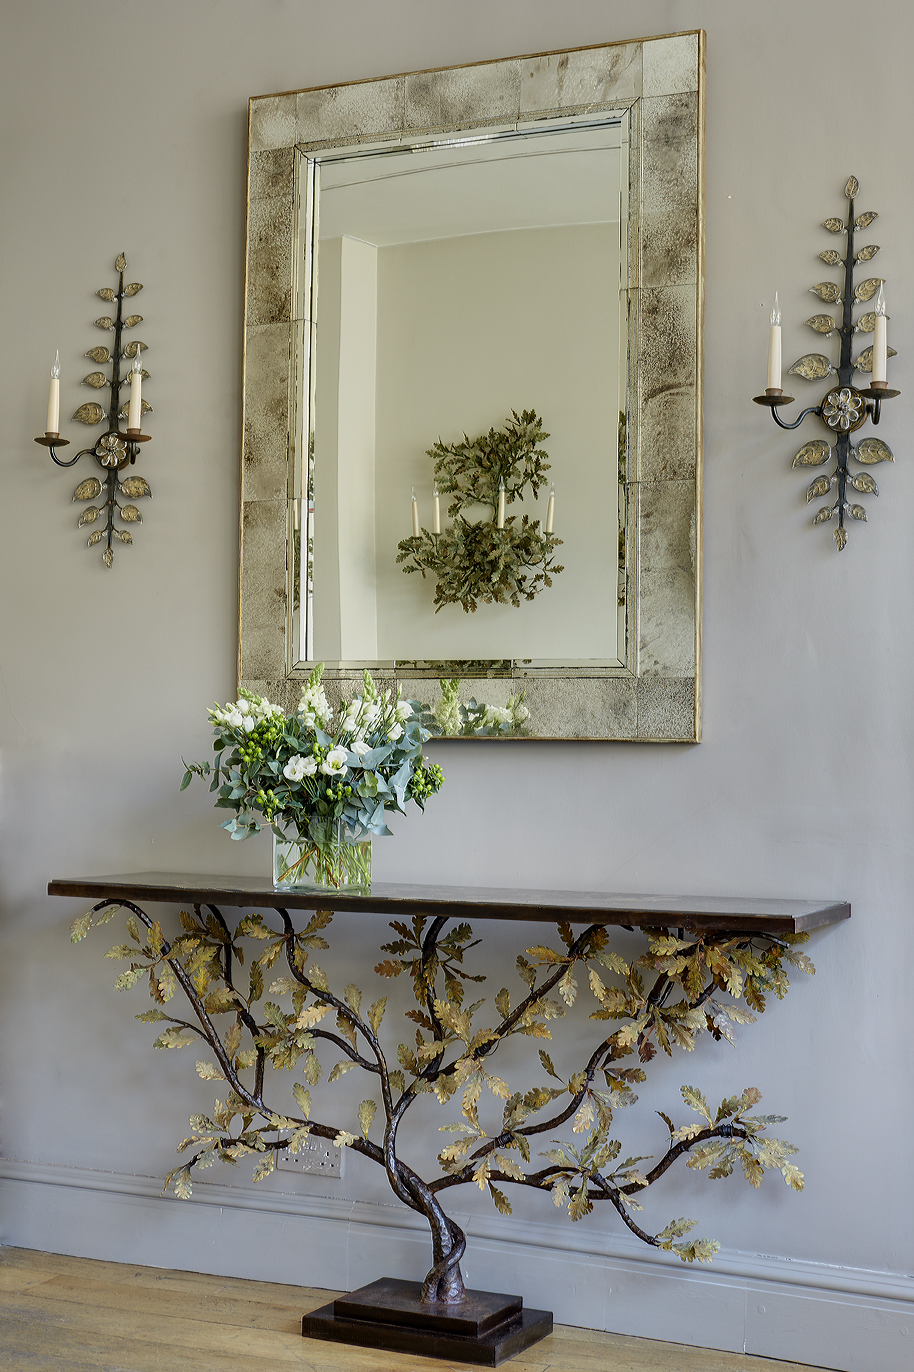 A custom made console table based on the oak leaf design.